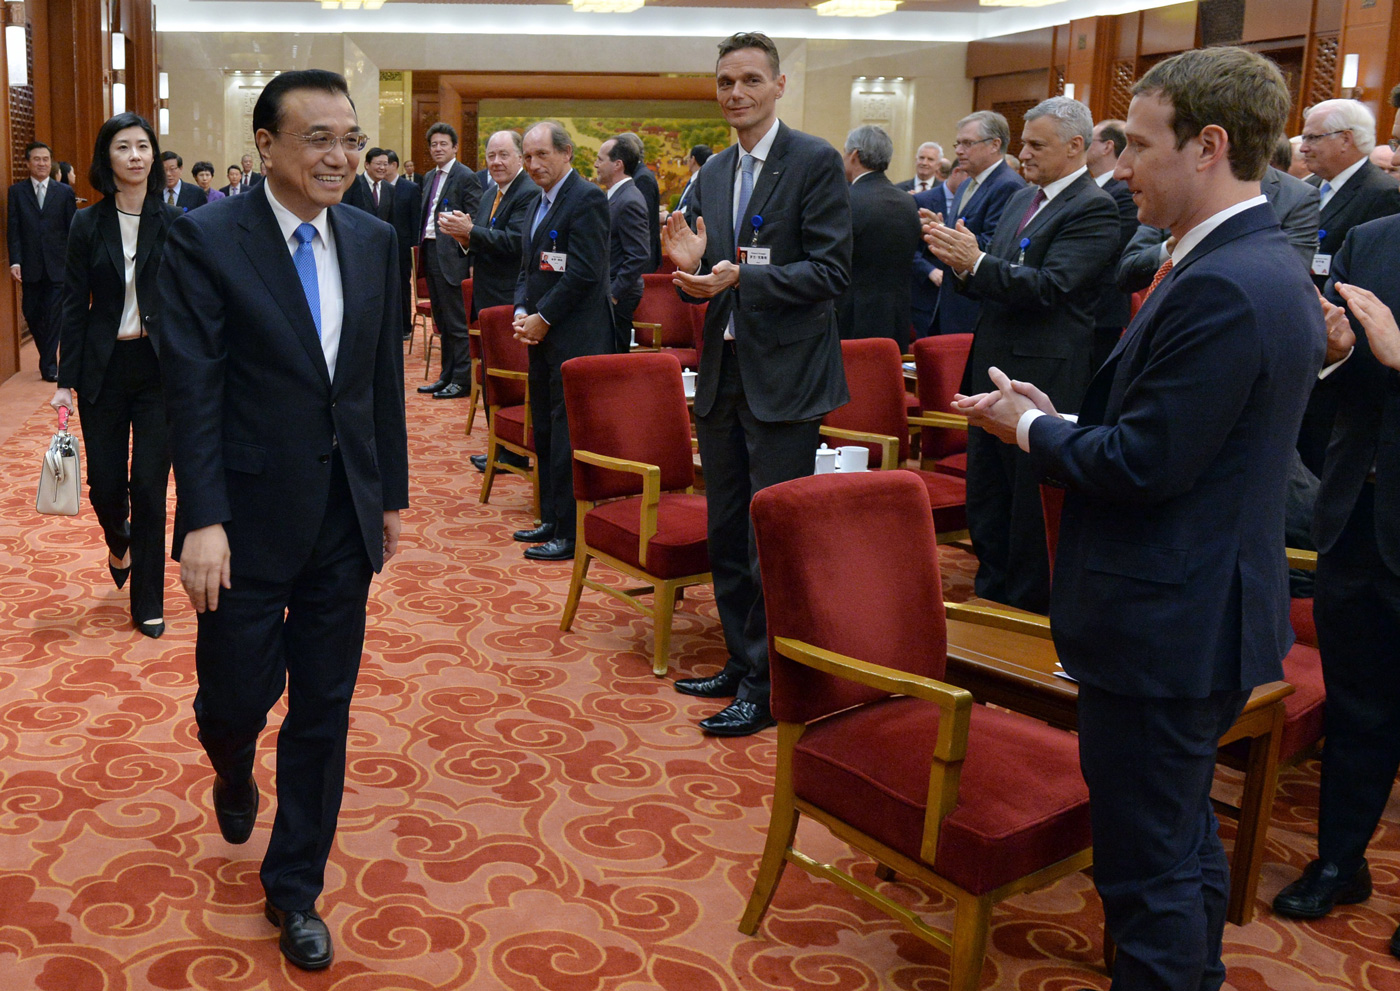 Mark Zuckerberg, right, gave Chinese Premier Li Keqiang a warm welcome at the China Development Forum earlier this year.